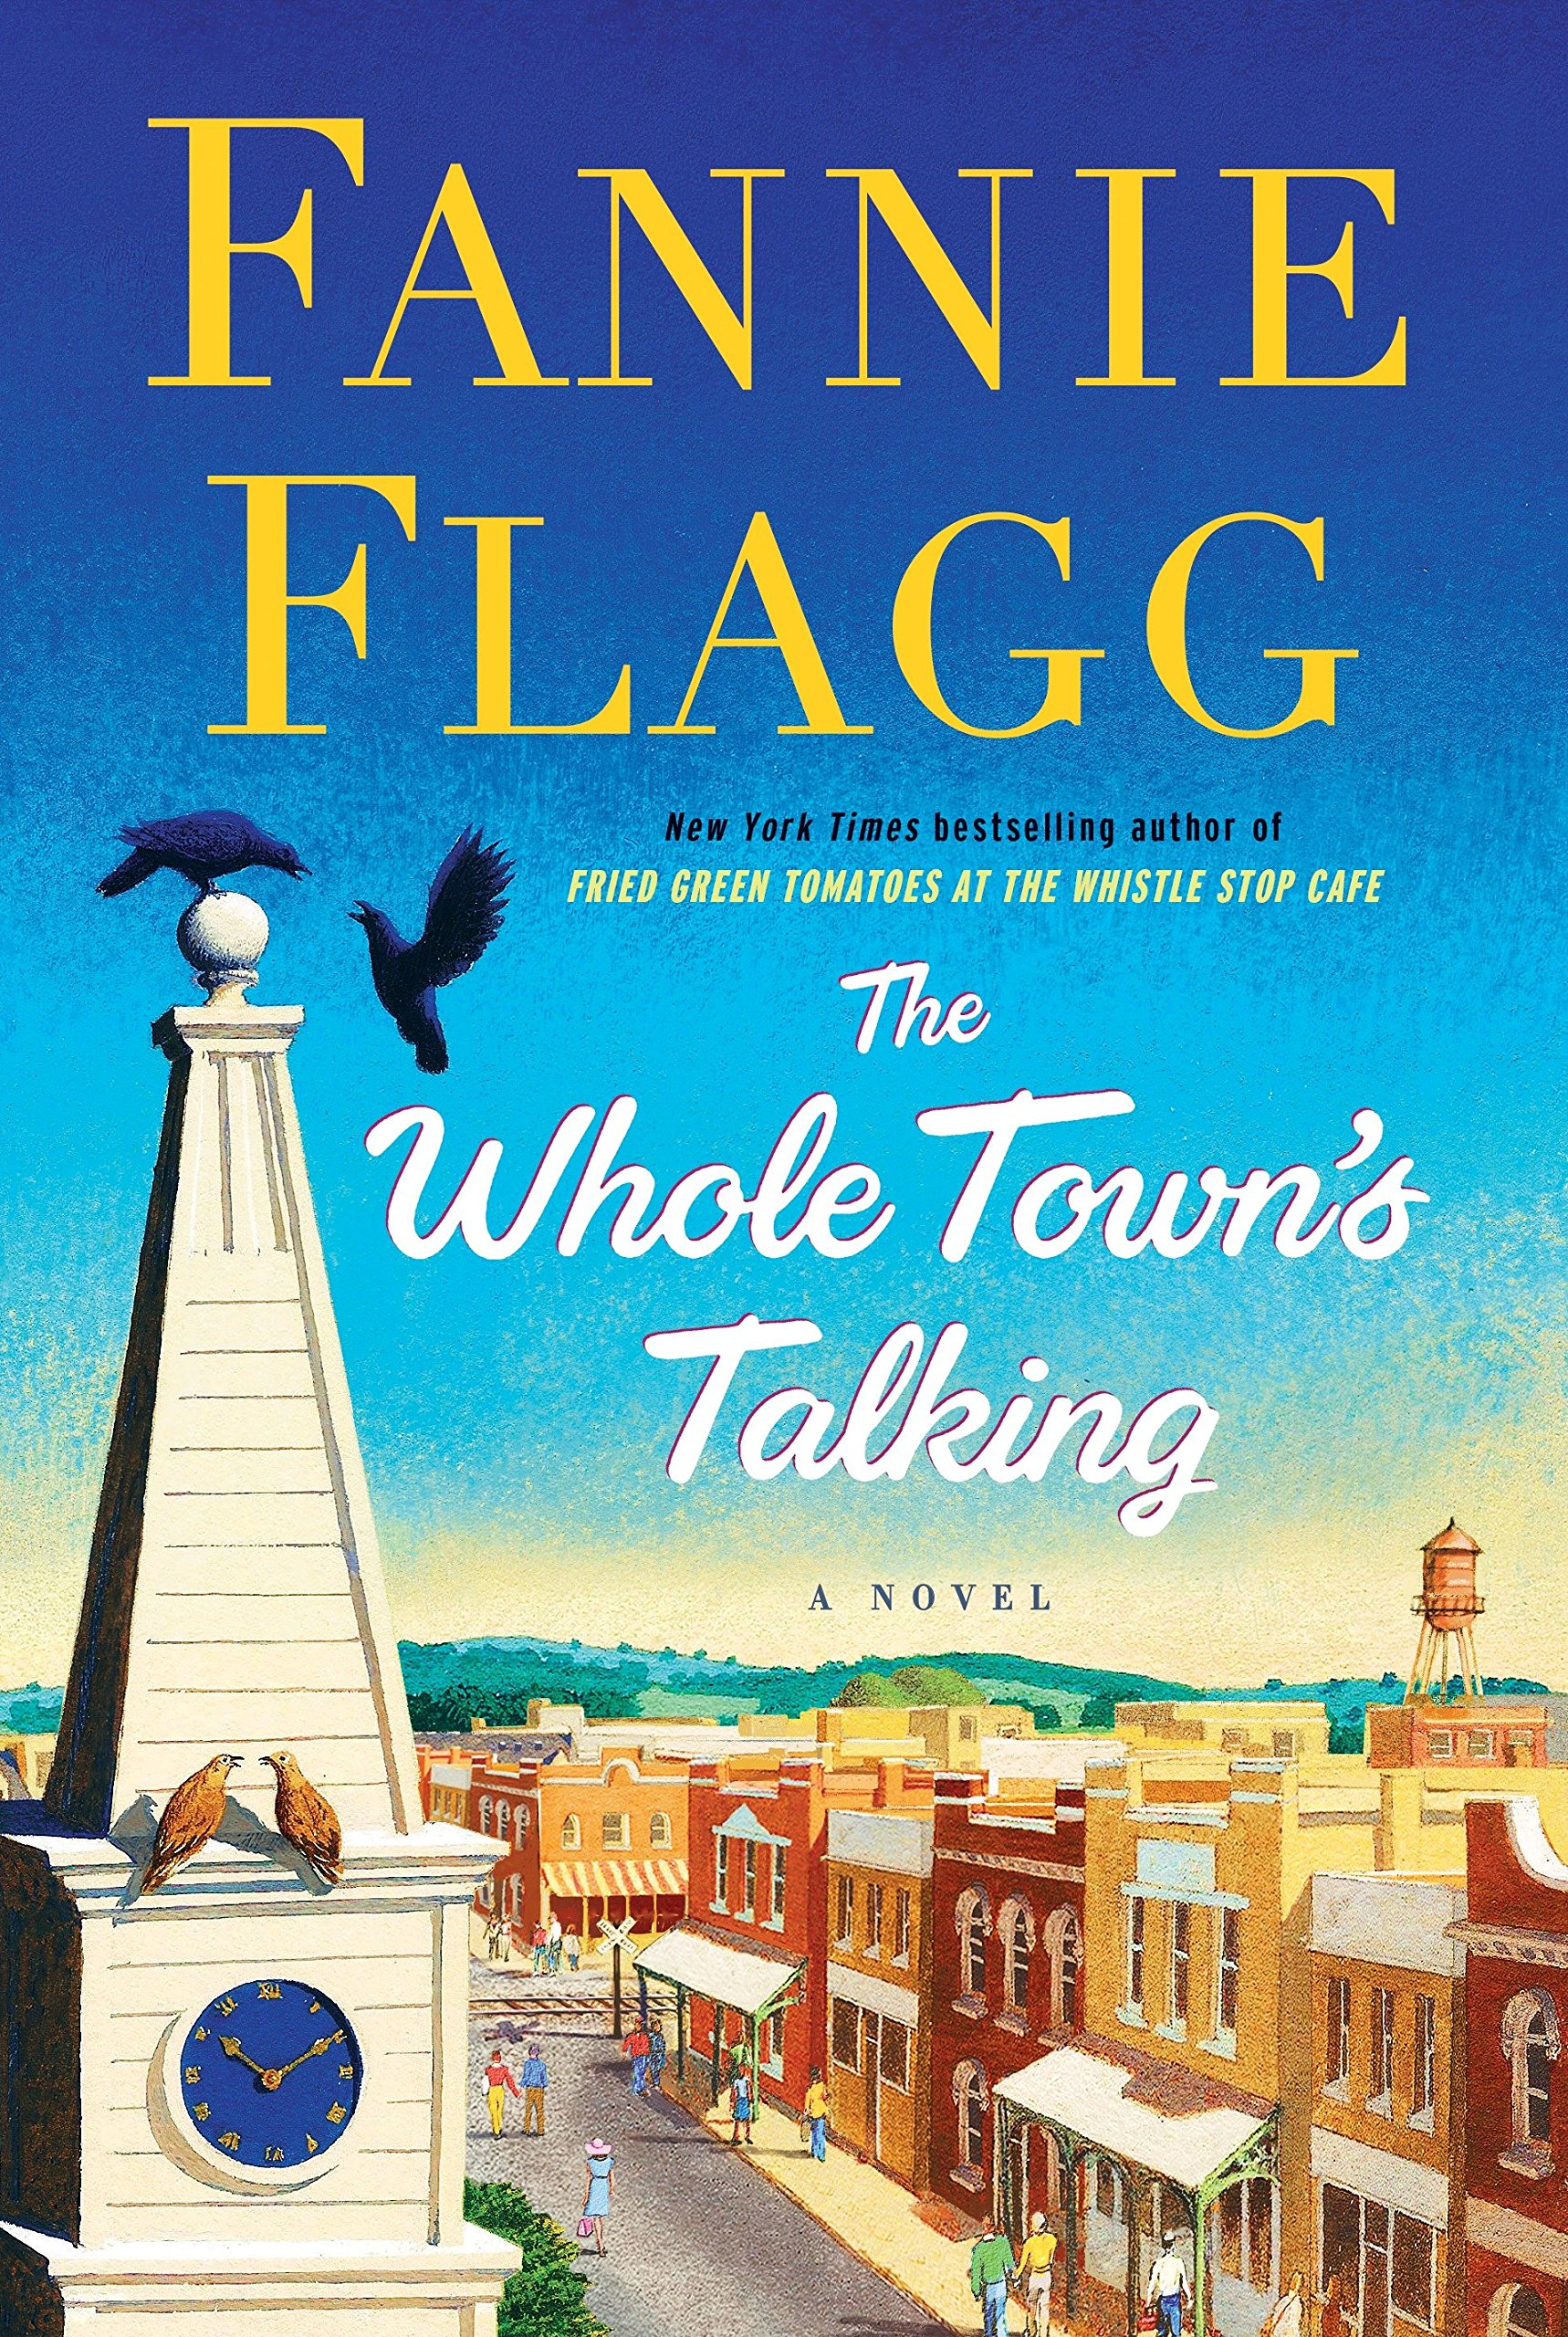 Fannie Flaggs All-Time Favorite Reads